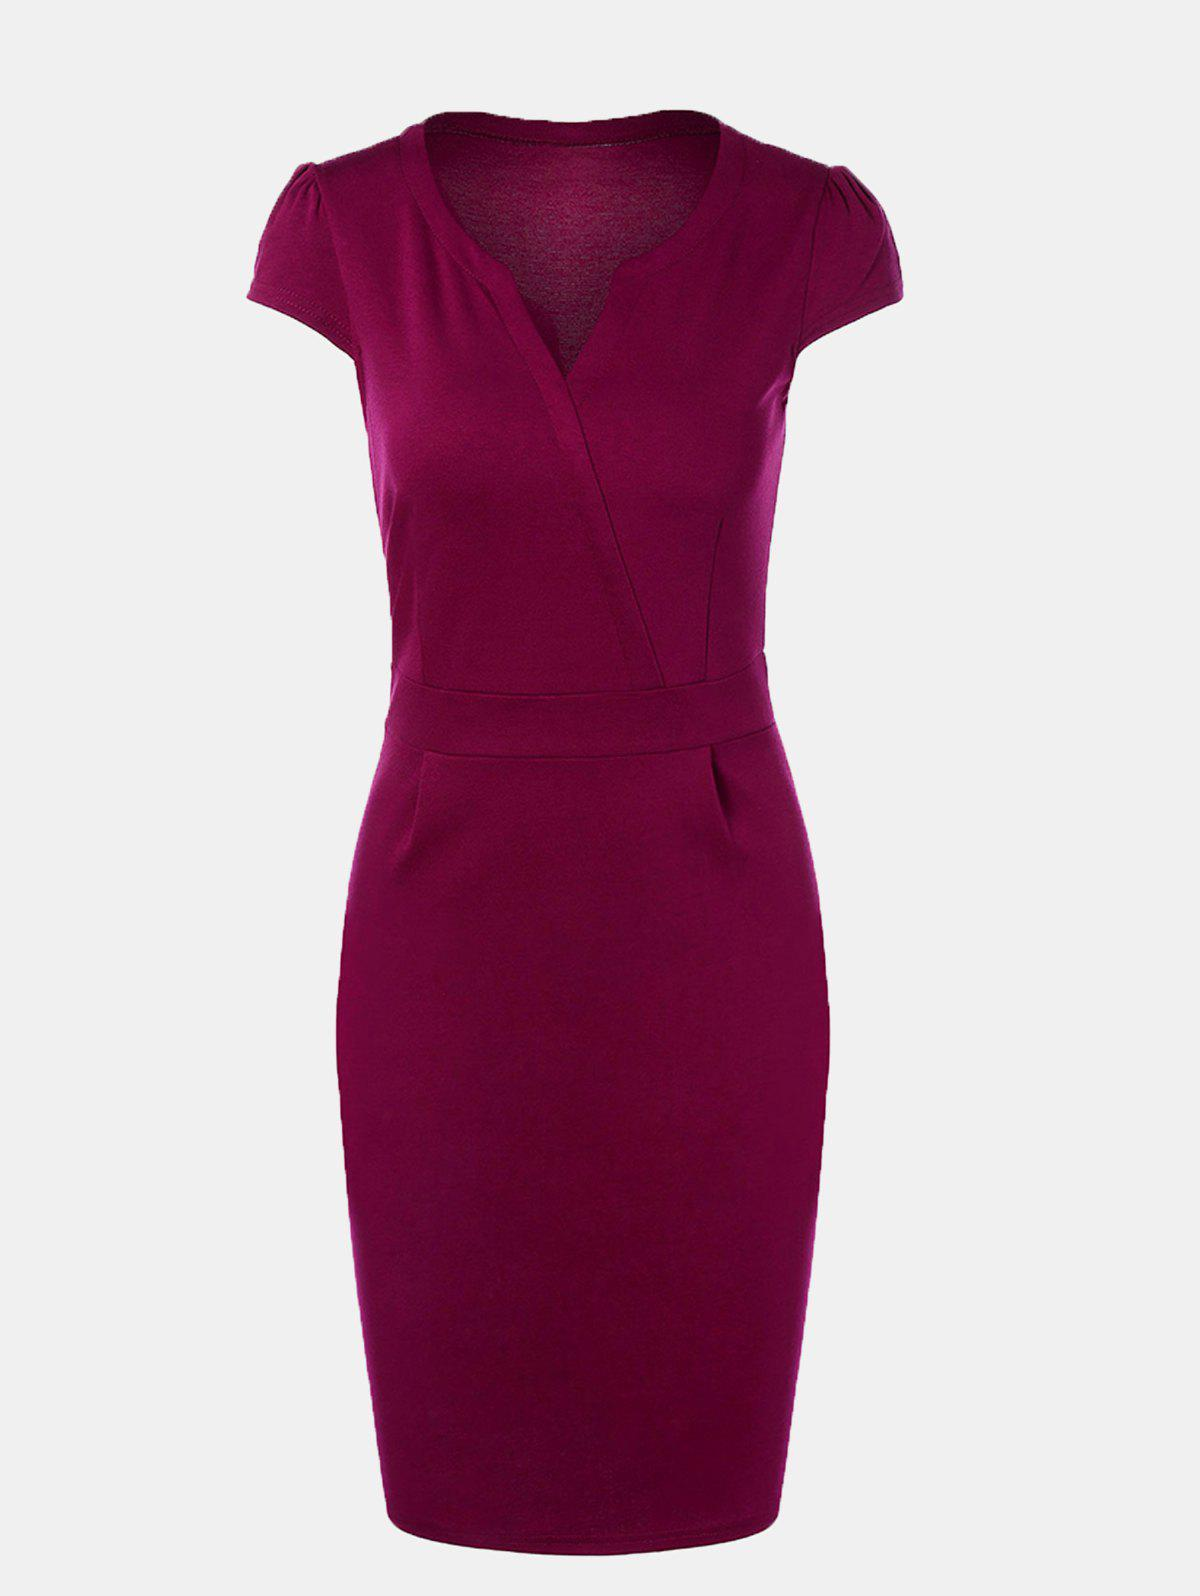 V Neck Wrap Shoulder Sleeve Slim Pencil Dress - PURPLE L